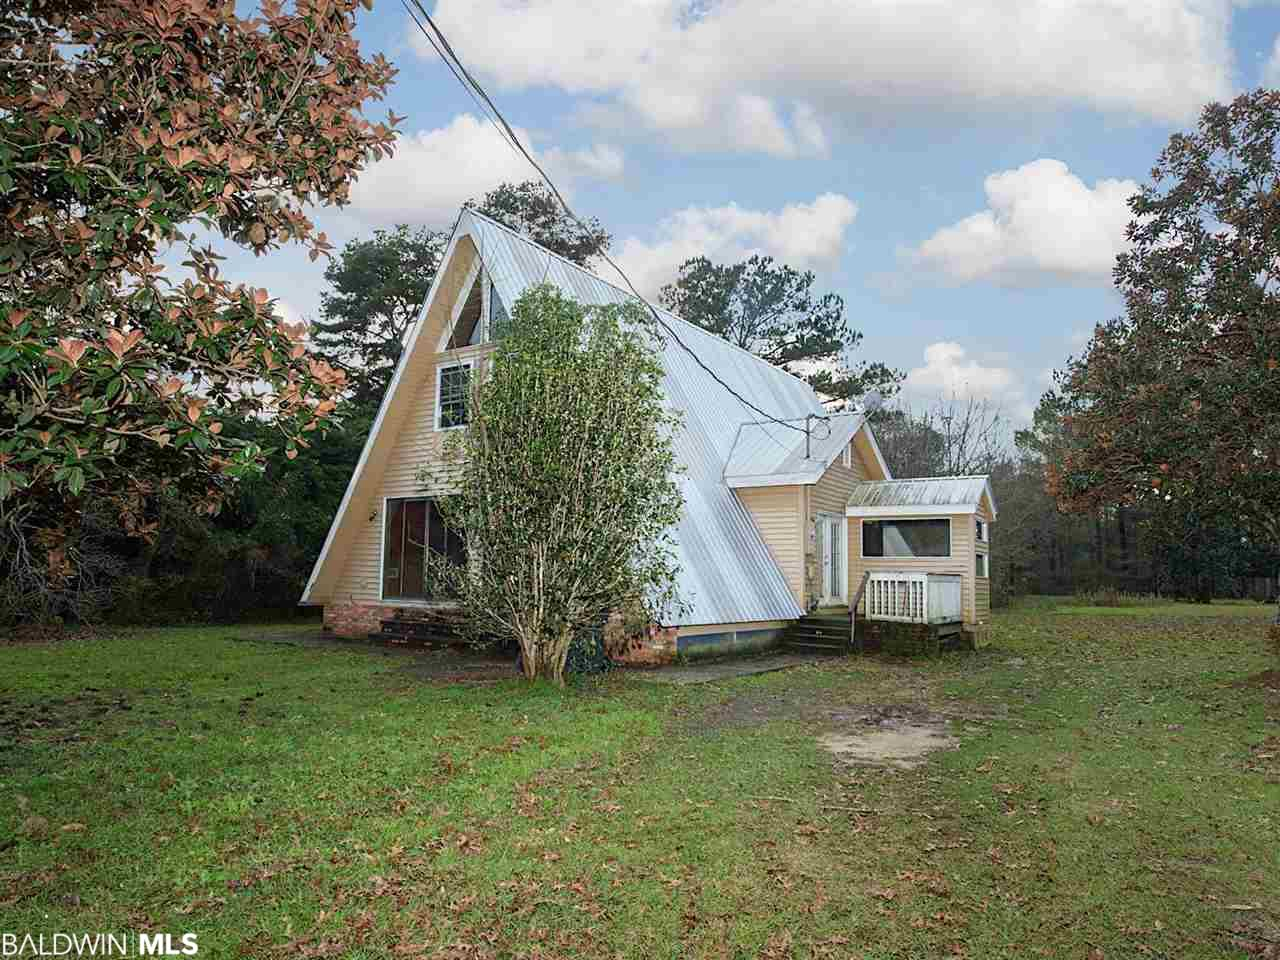 20875 Lawrence Rd, Fairhope, AL 36532